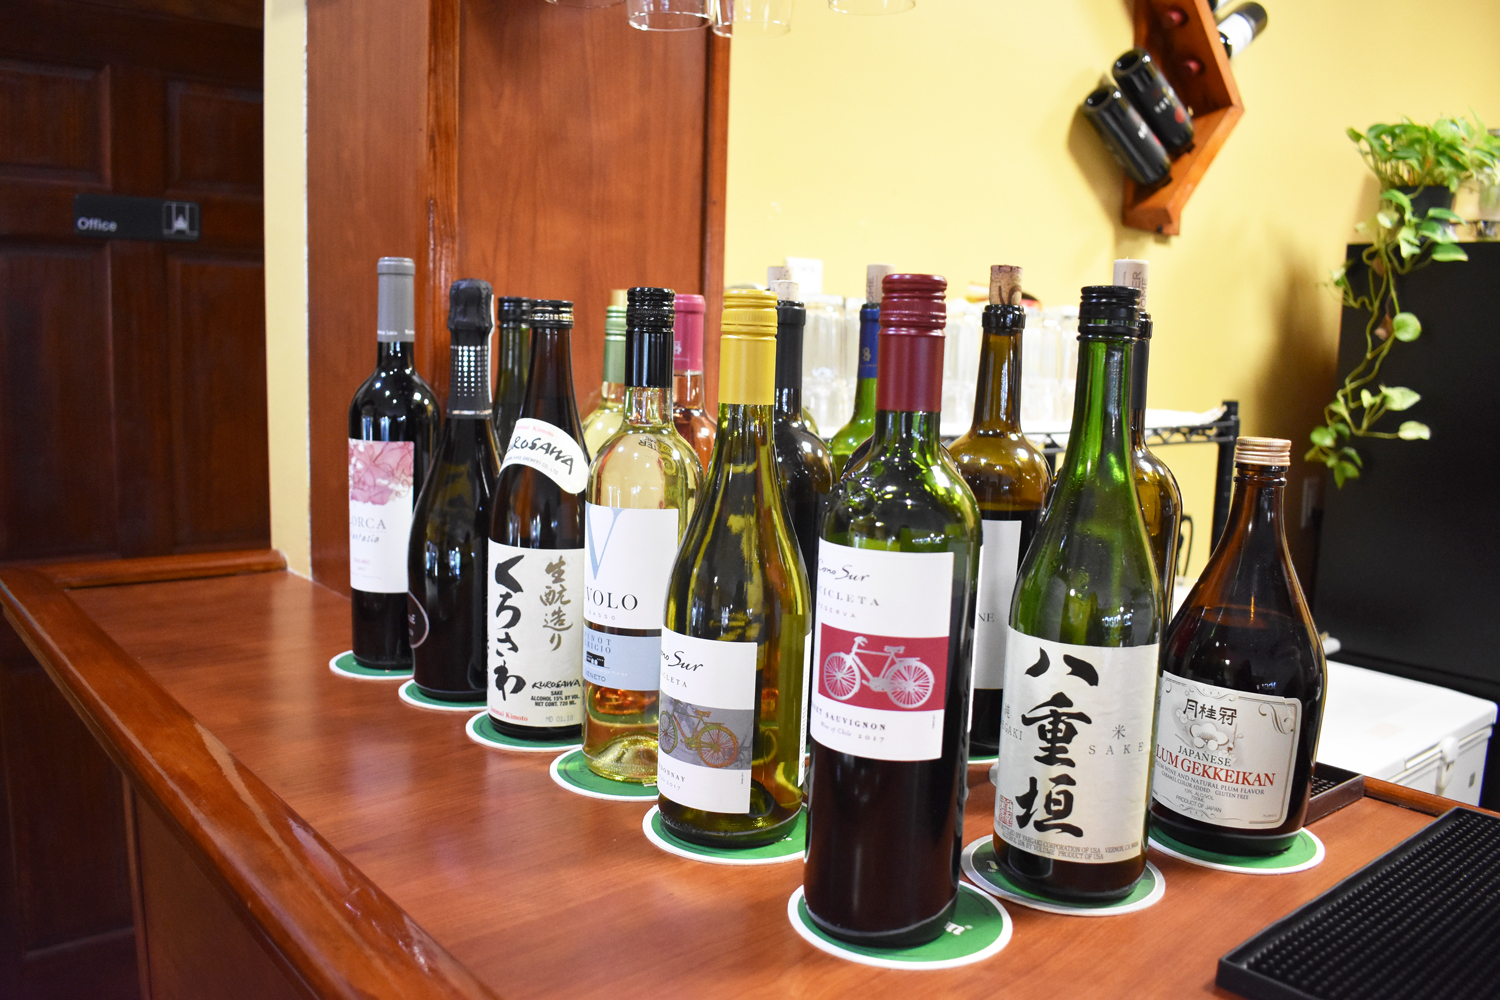 China Village Wine Selection